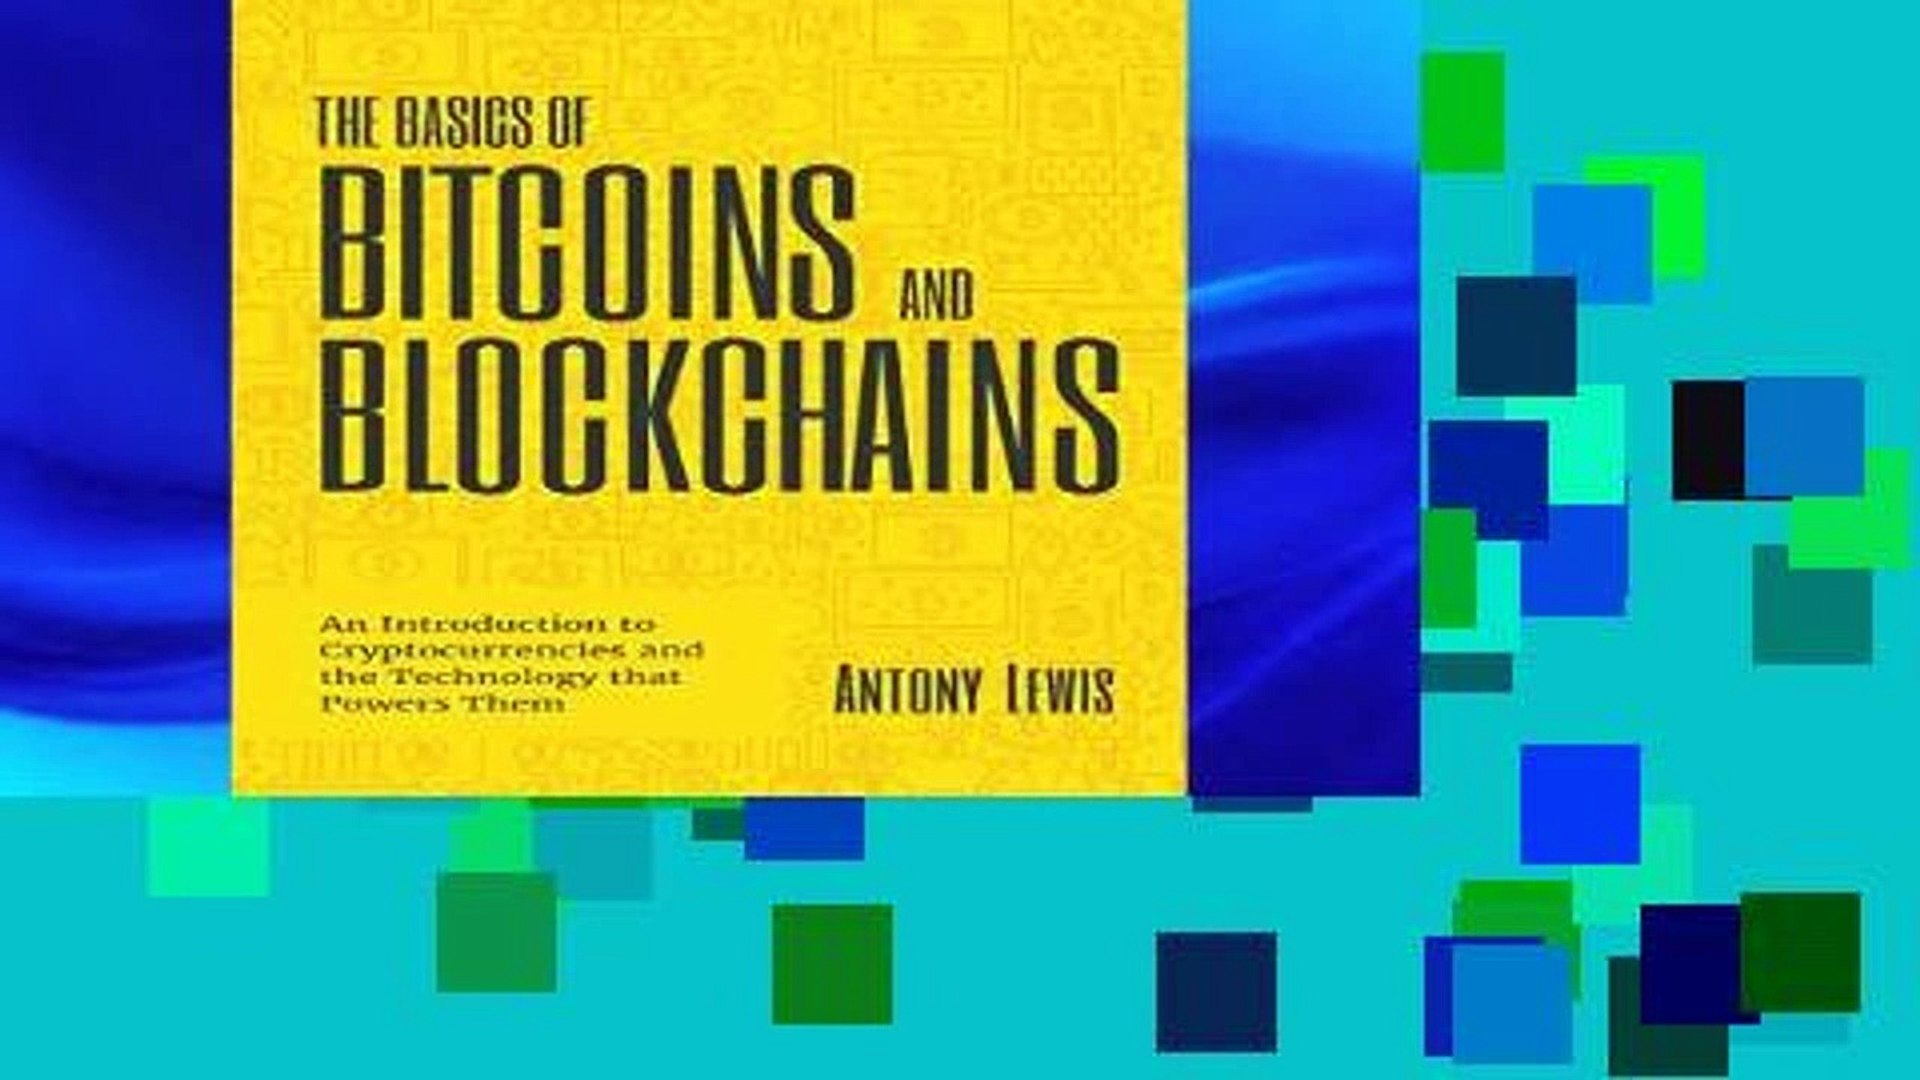 D.O.W.N.L.O.A.D [P.D.F] The Basics of Bitcoins and Blockchains: An Introduction to